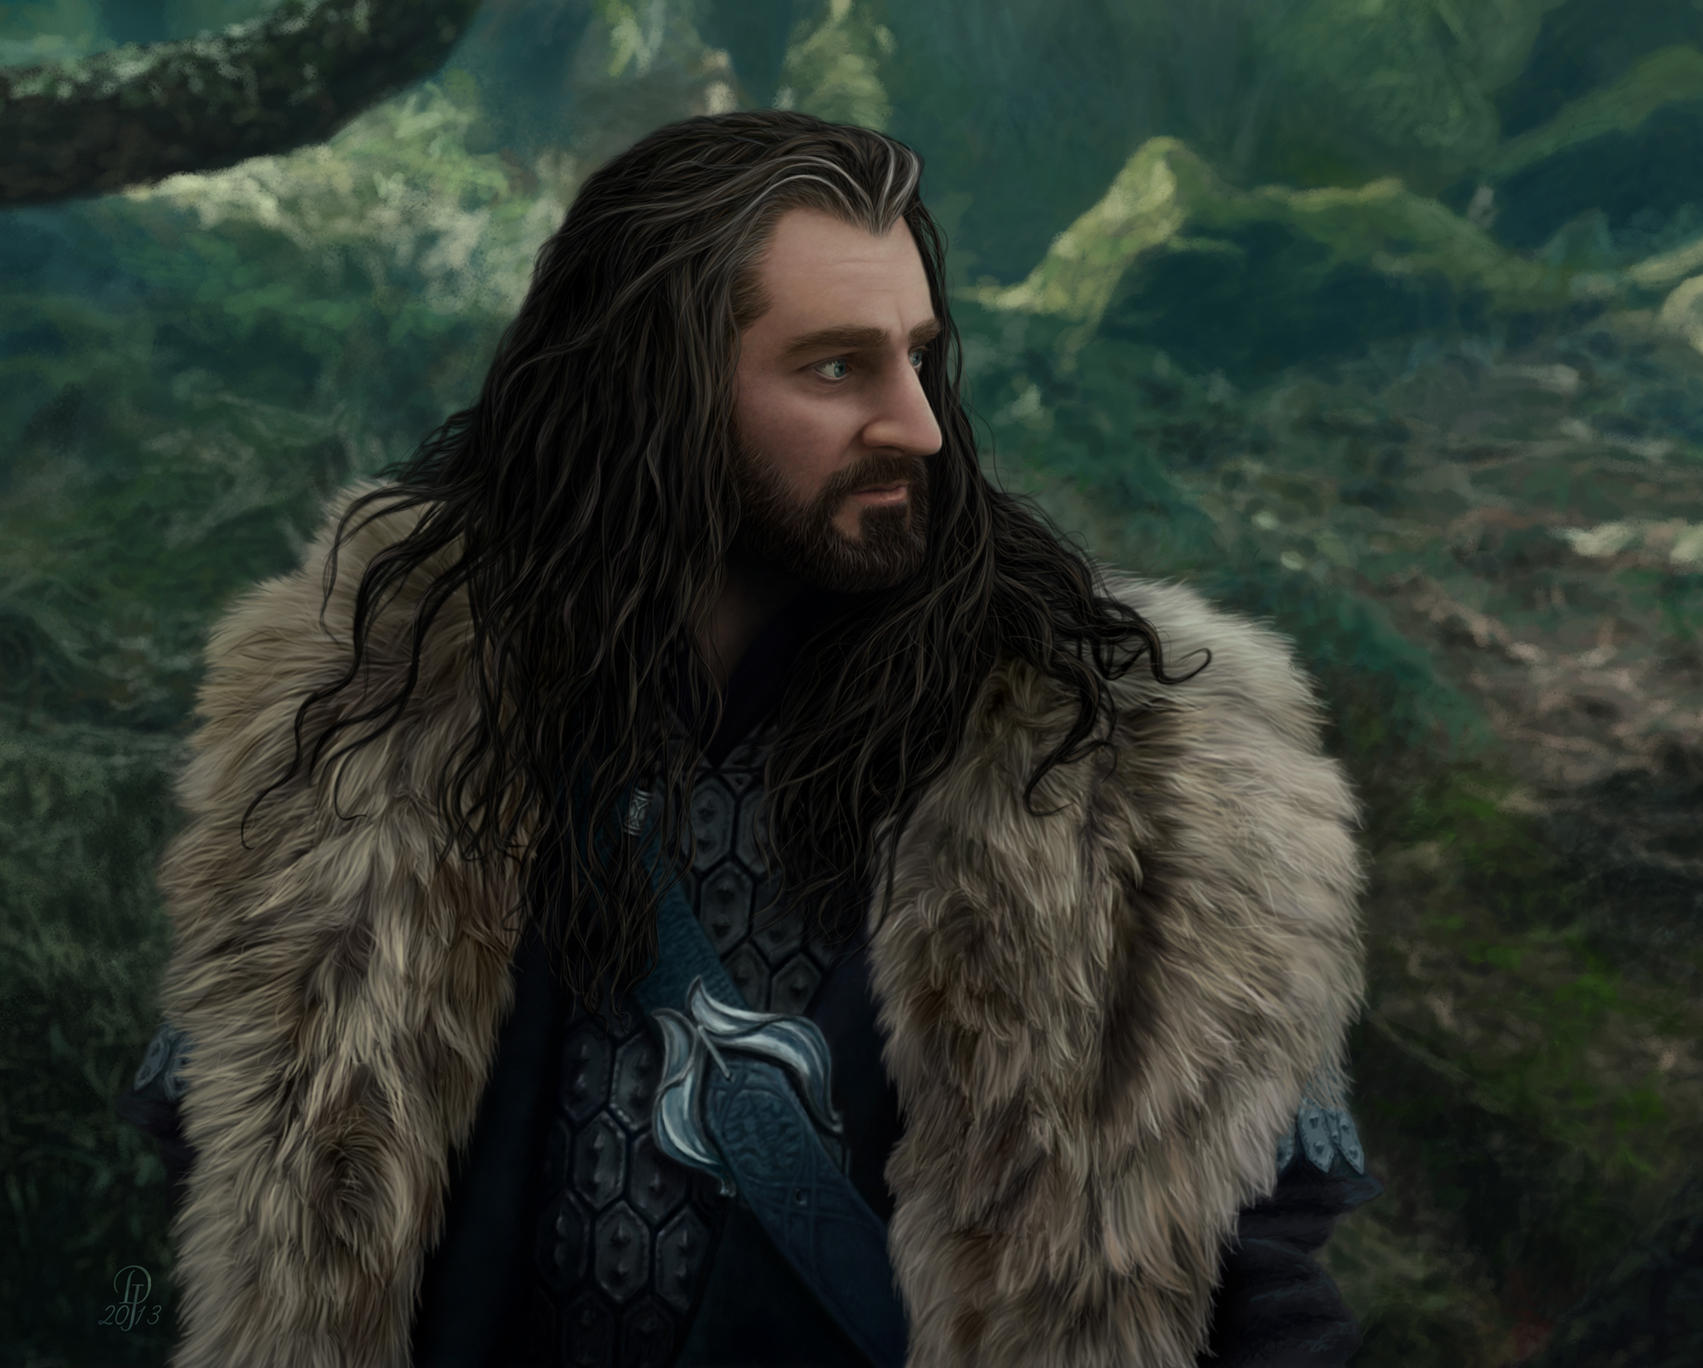 Thorin Oakenshield - Imminent Attack by DarqueJackal